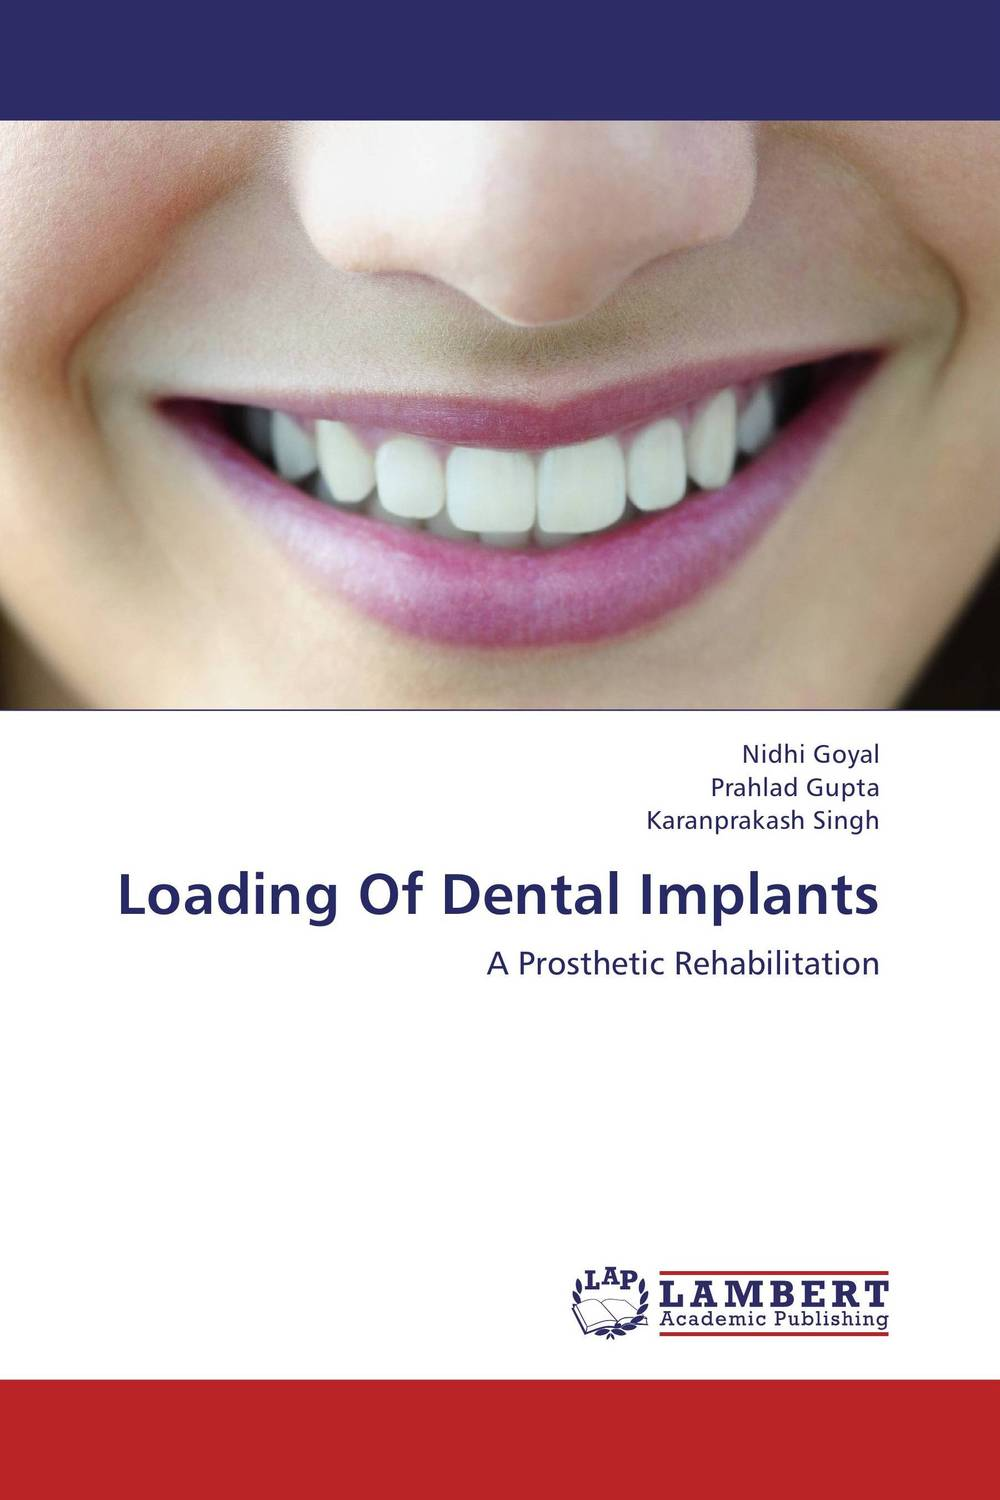 Loading Of Dental Implants temporomandibular disorders and prosthetic replacement of missing teeth